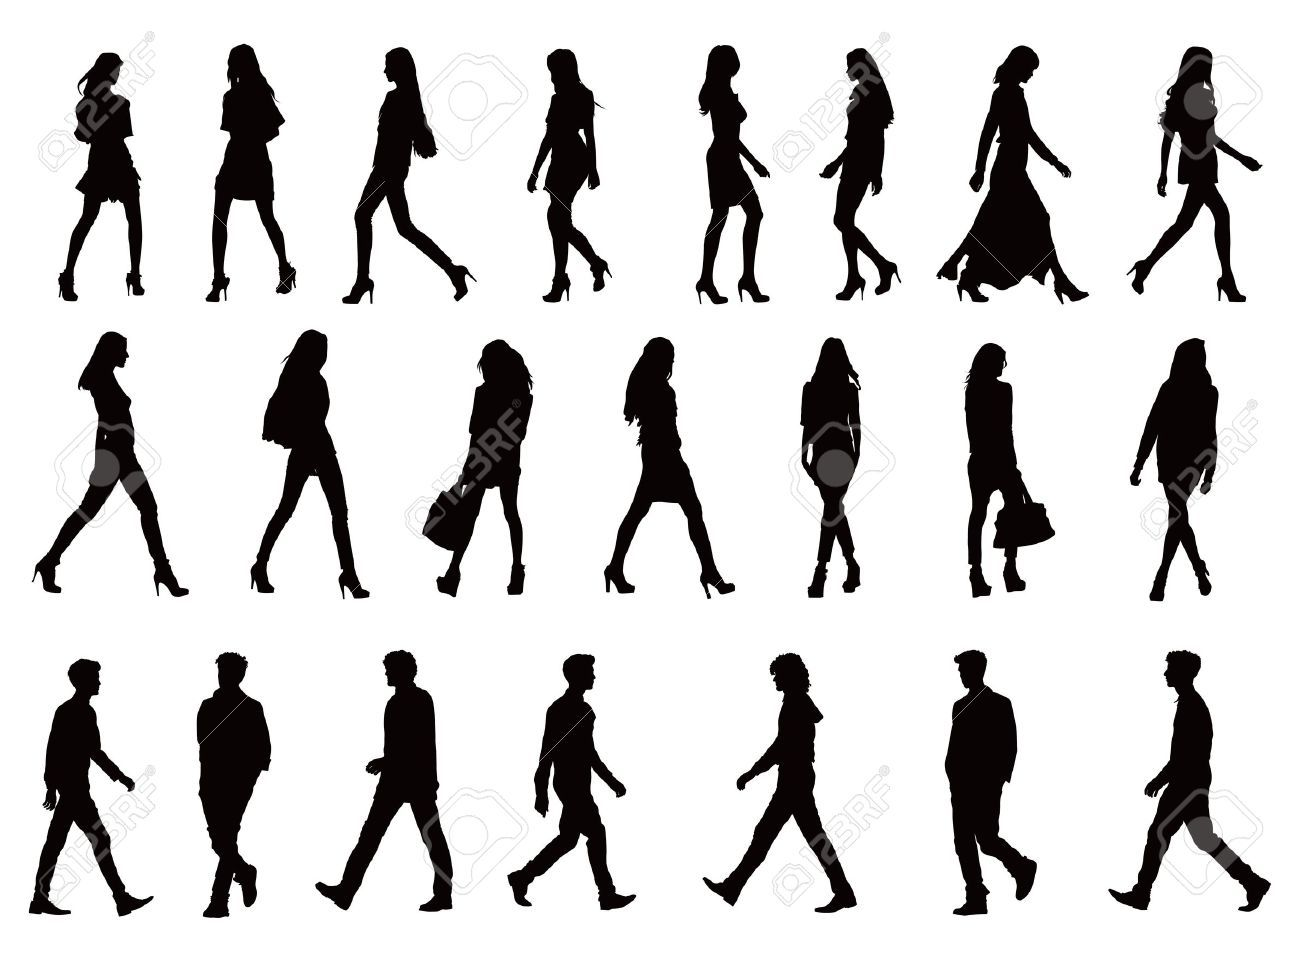 Silhouette Paintings Of People Image Result For Silhouette People Art Plastique